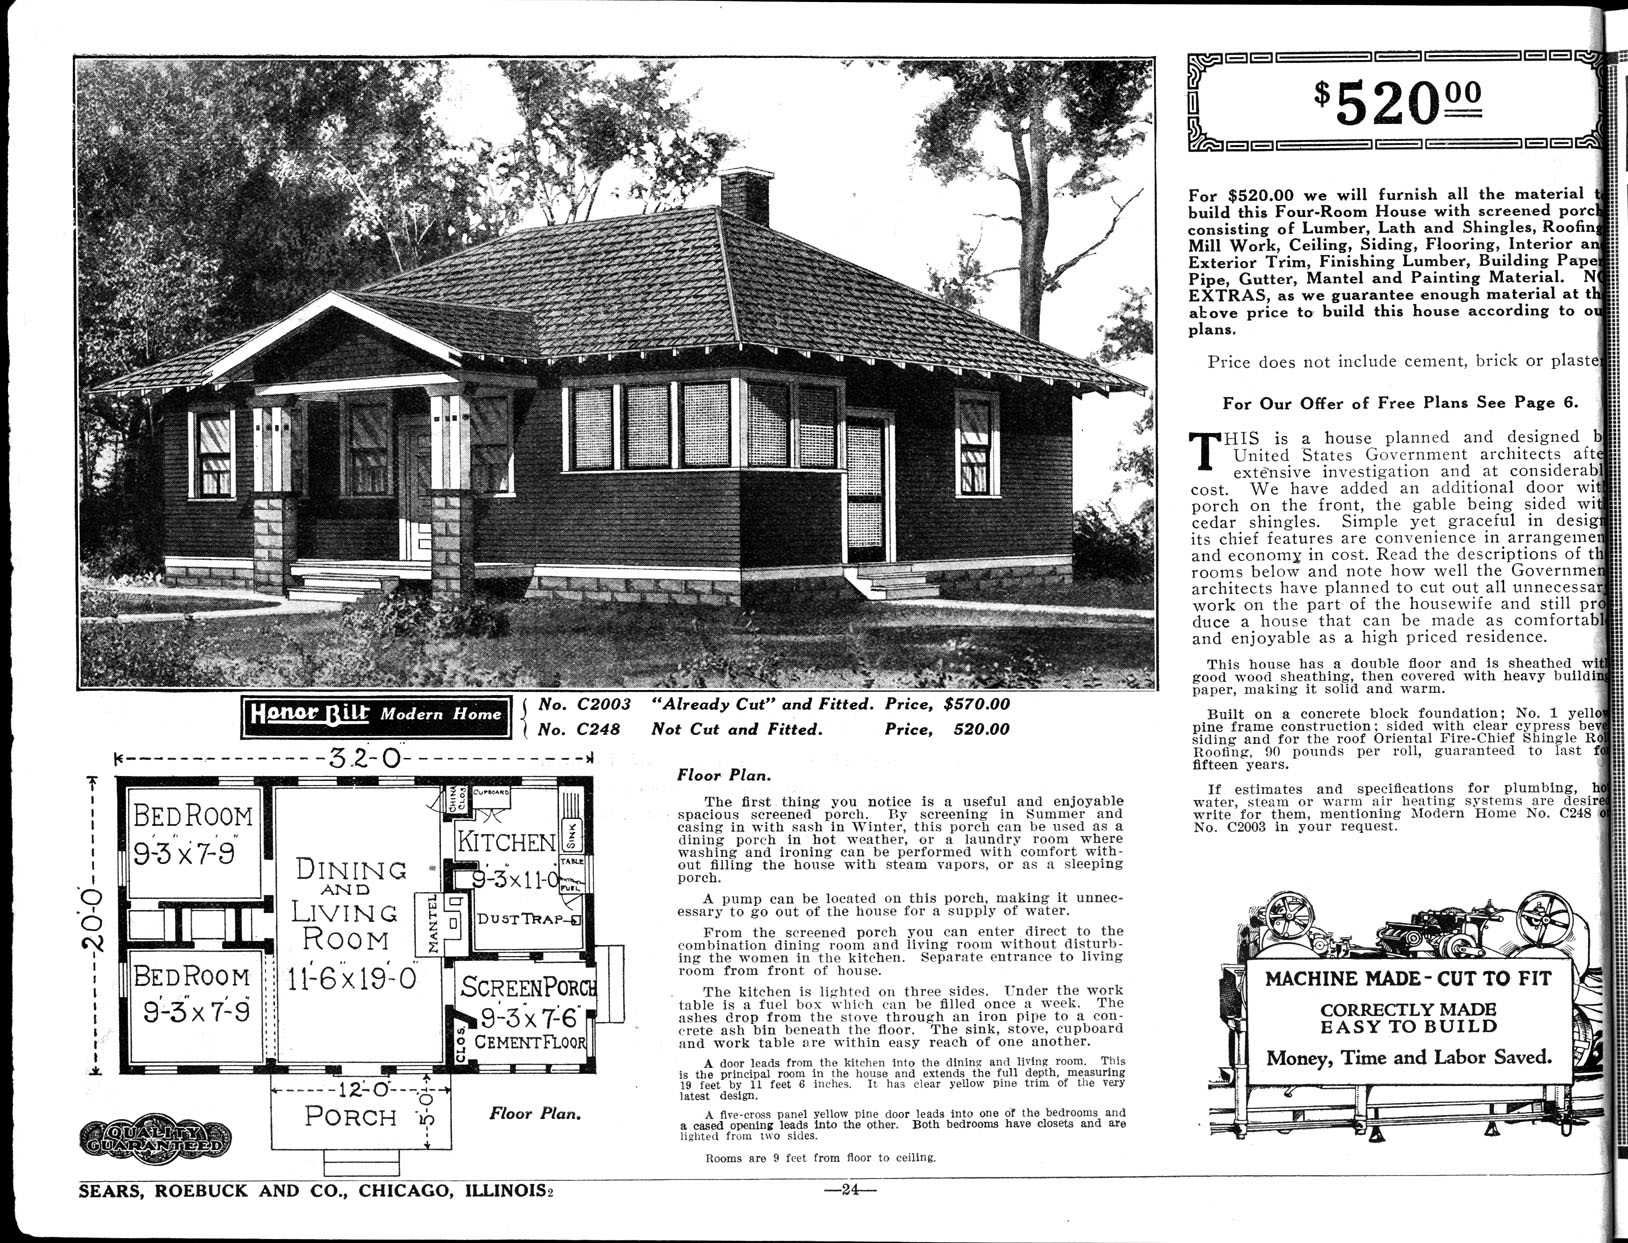 1922 Sears Roebuck Home, The Wabash, Model # 2003